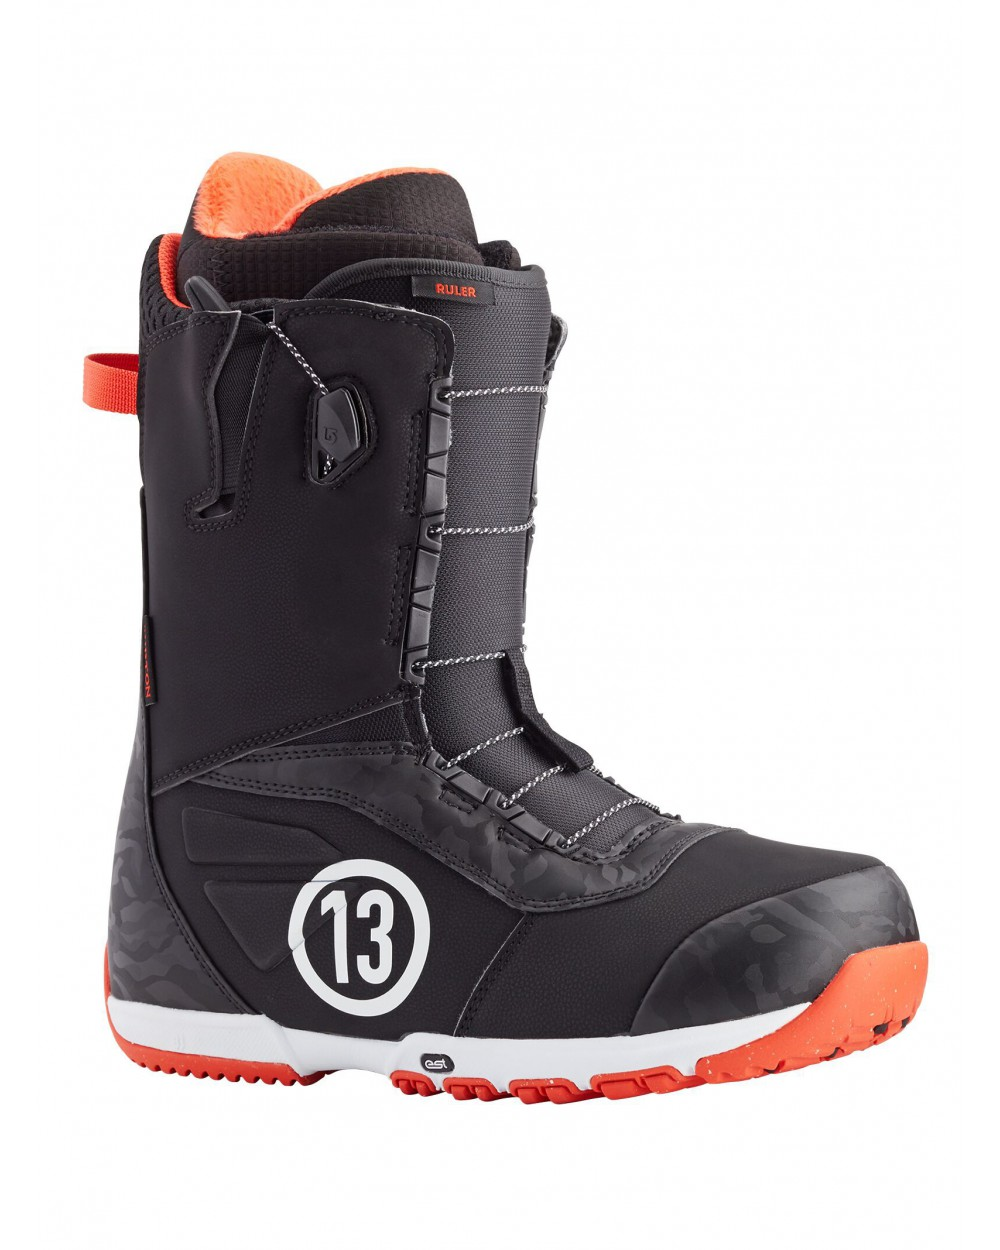 Burton Ruler Snowboard Boot - Black / Red